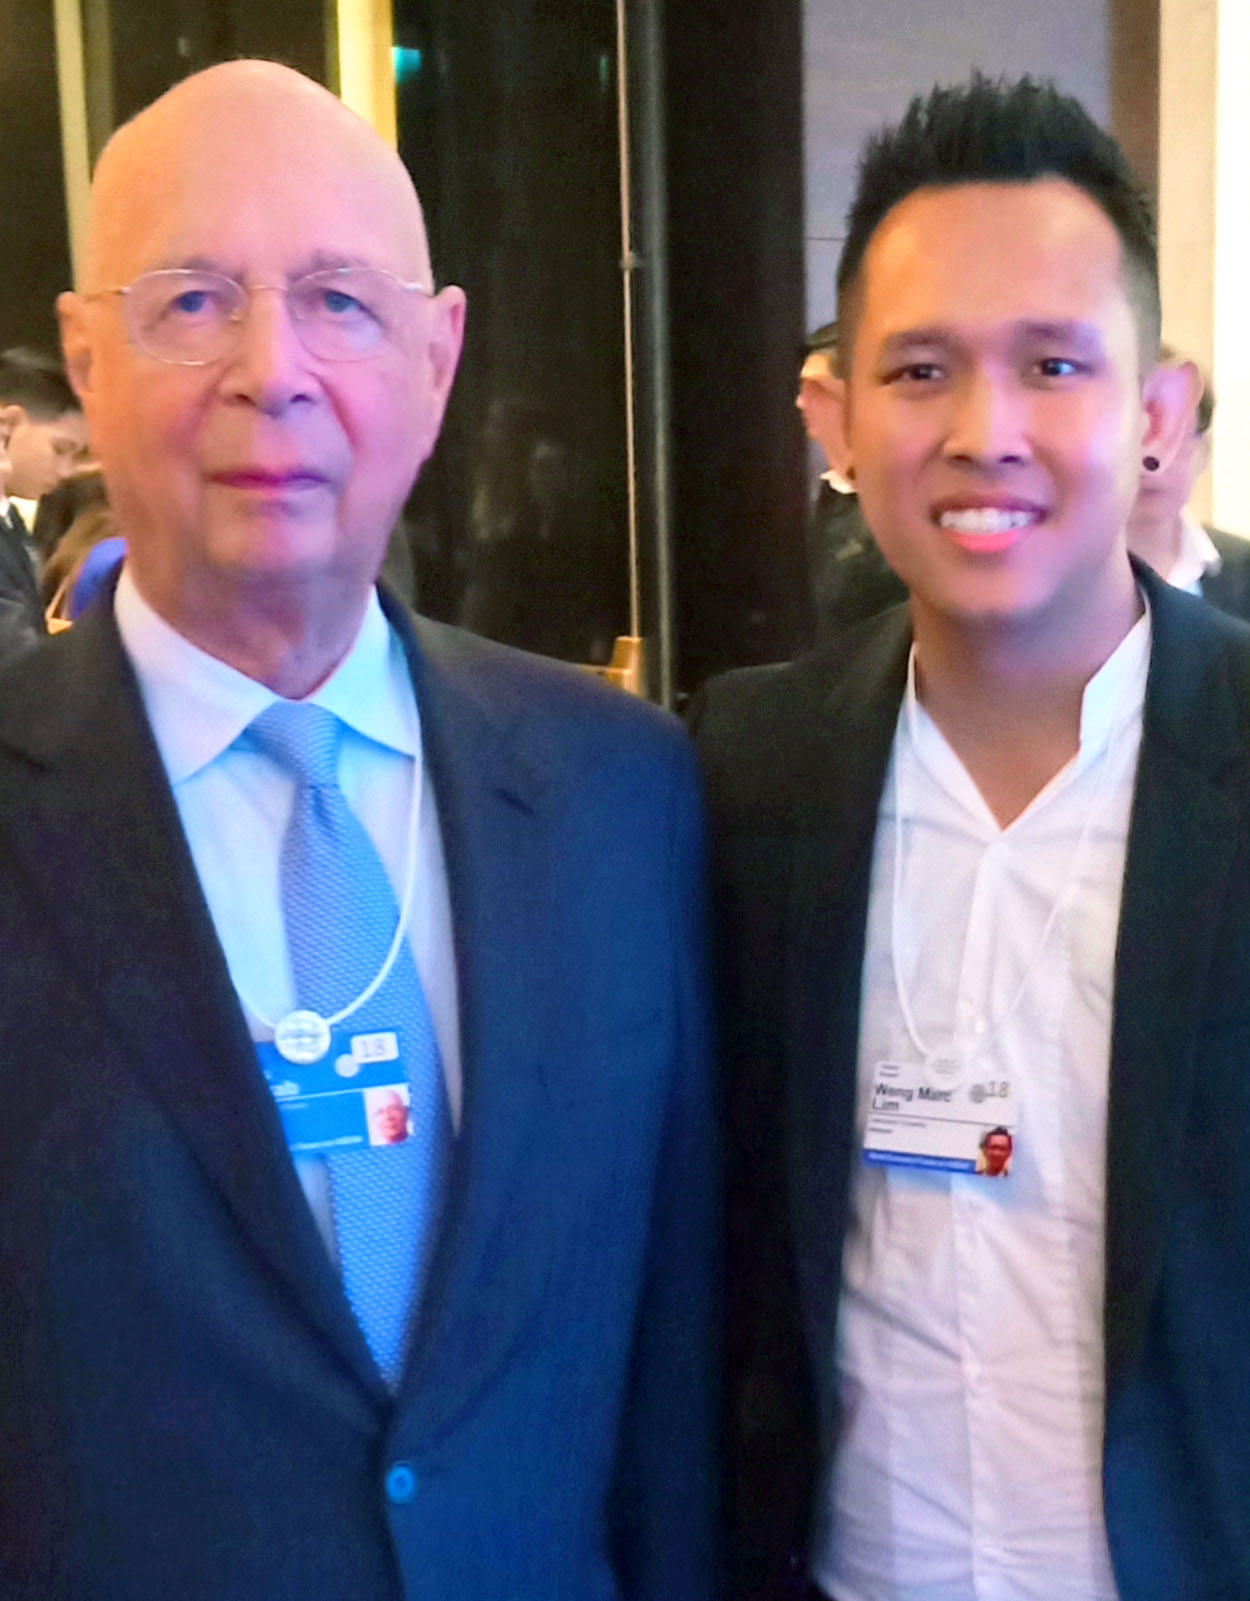 Dr Lim (right) with Founder and Executive Chairman of the WEF Professor Klaus Schwab.